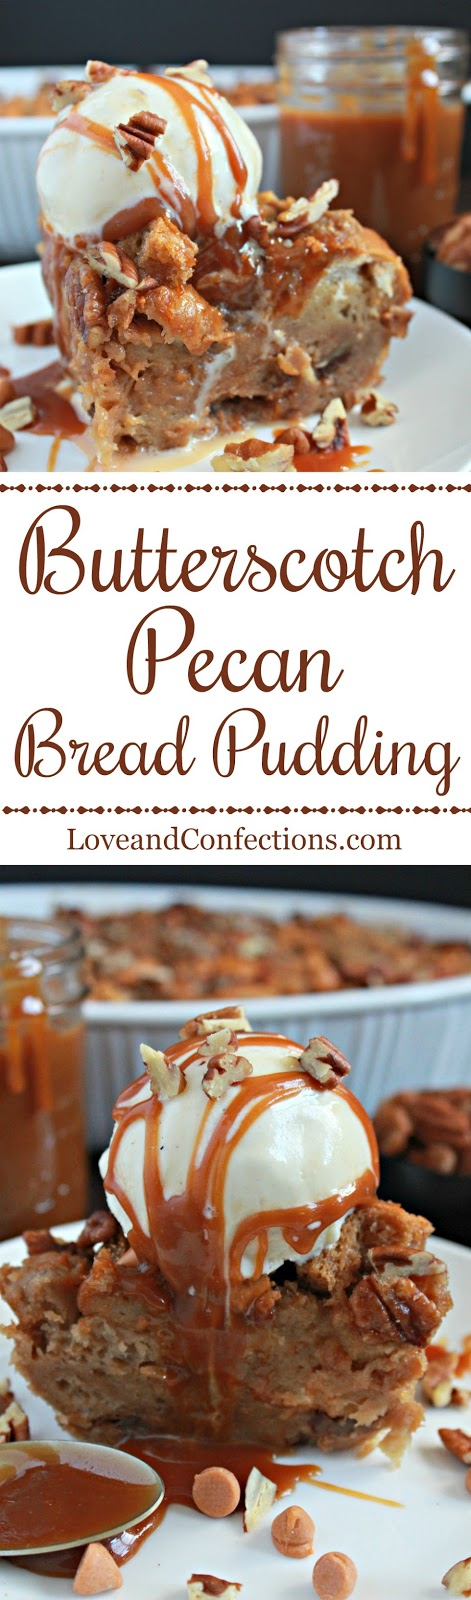 Butterscotch Pecan Bread Pudding from LoveandConfections.com